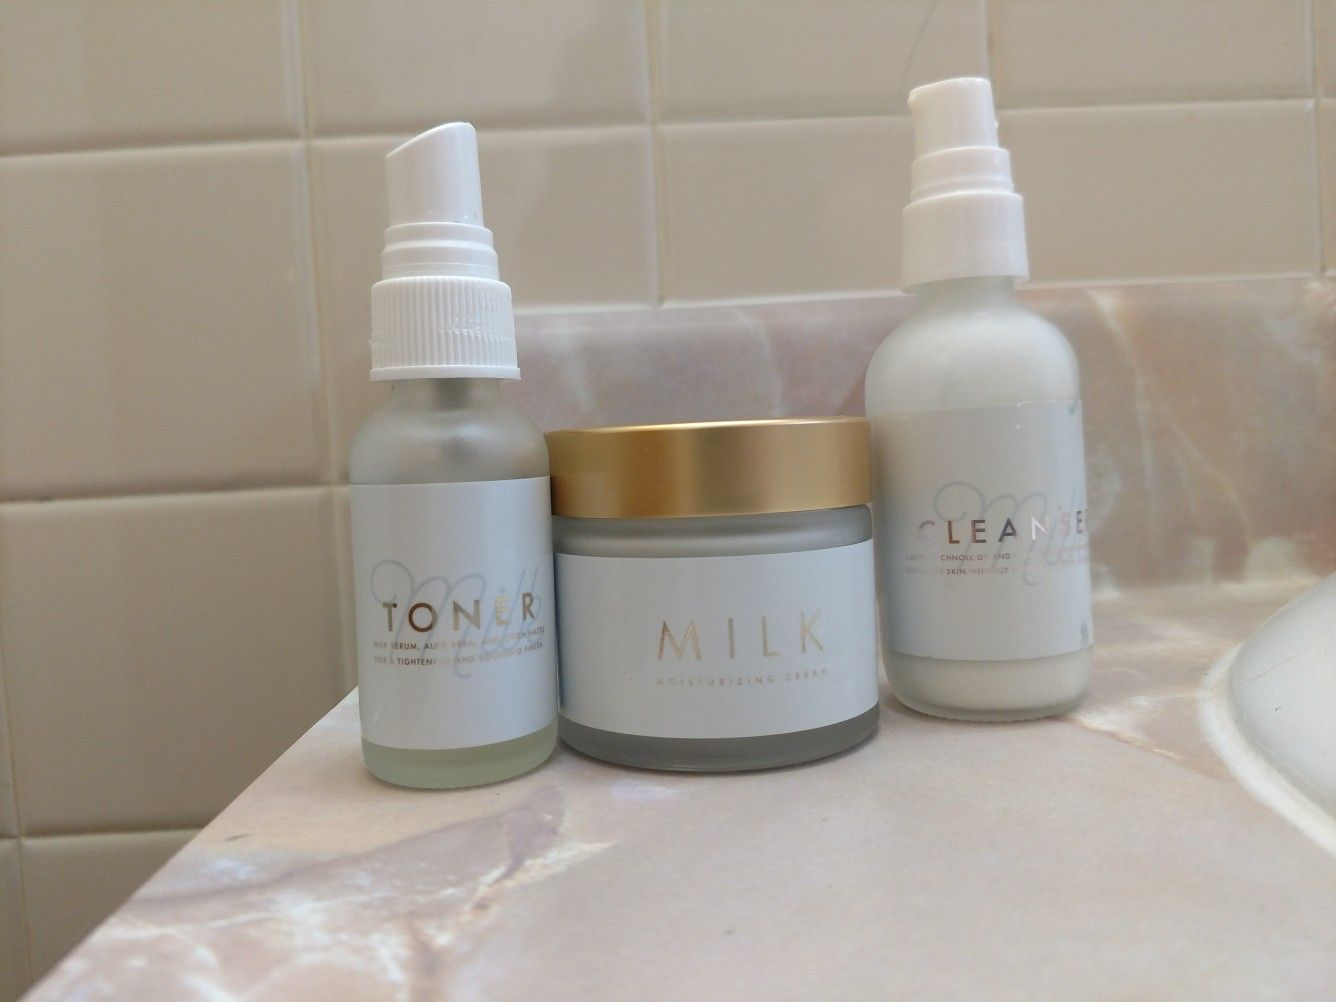 I love tres leches skin care from maskcara definitely has